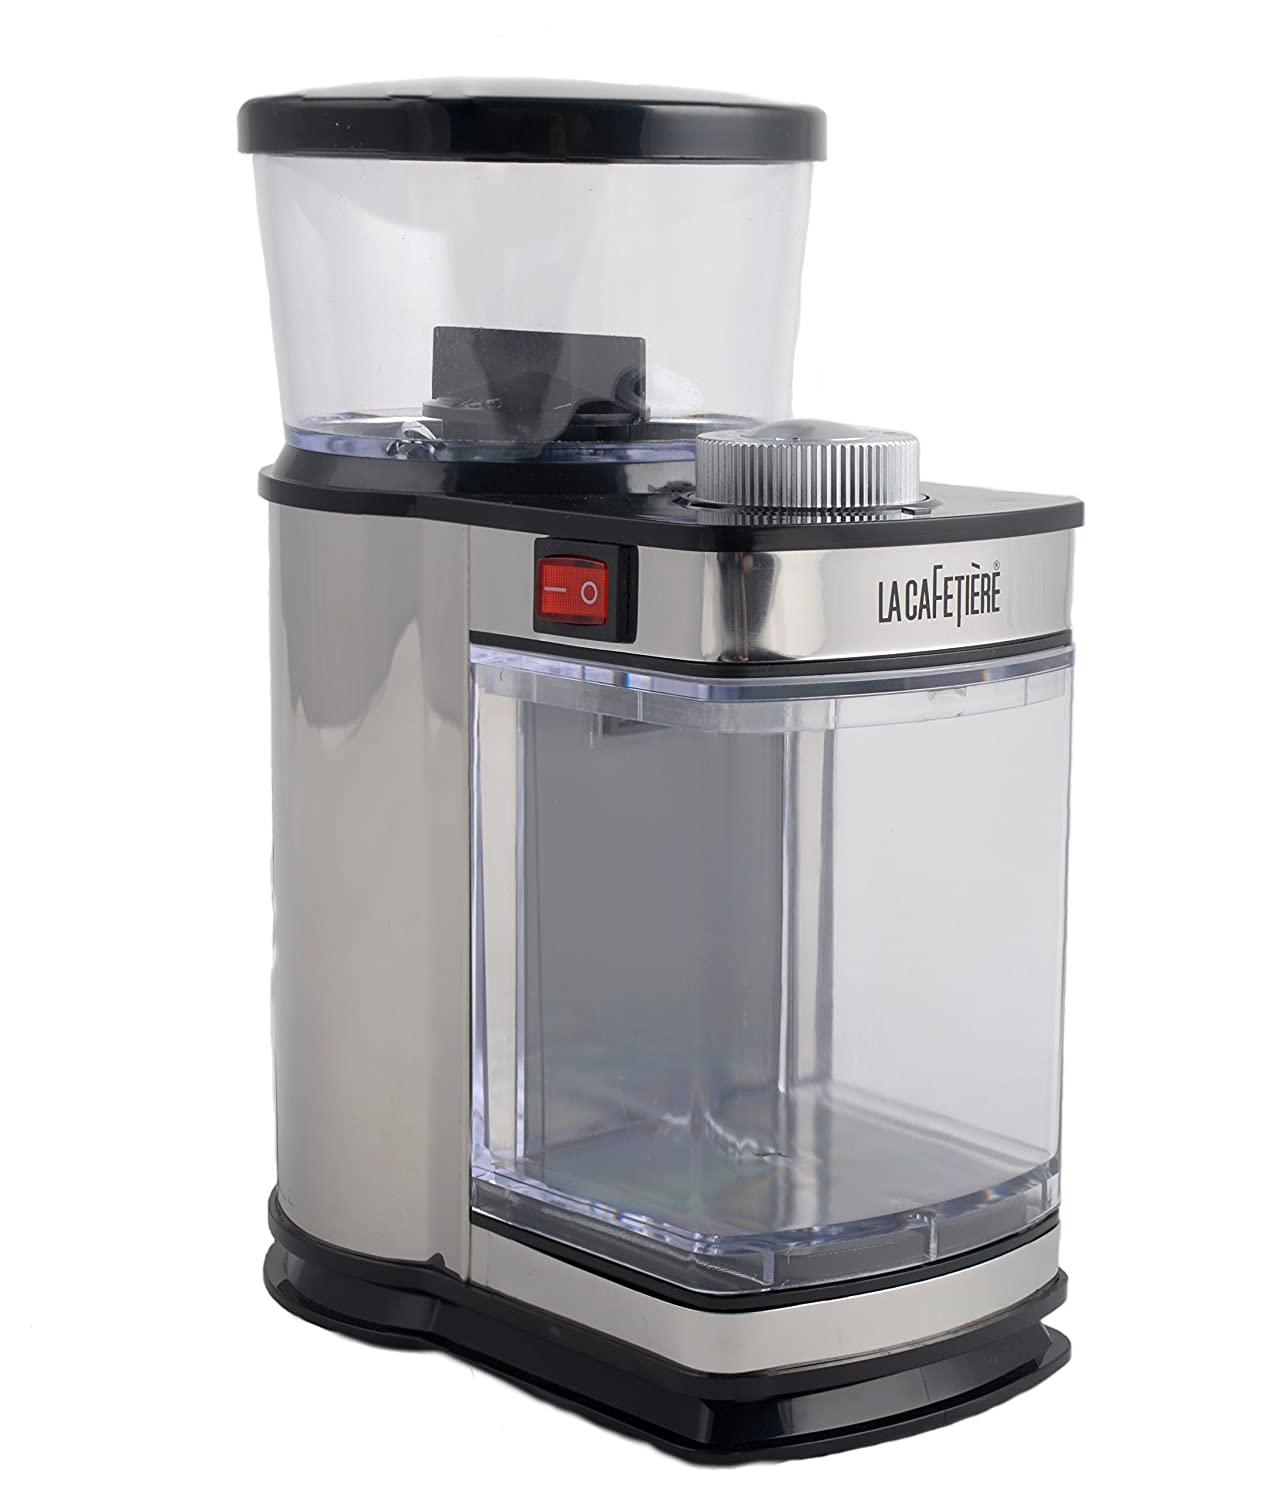 La Cafetiere Electric Coffee Bean Grinder, Black Creative Tops CG011201